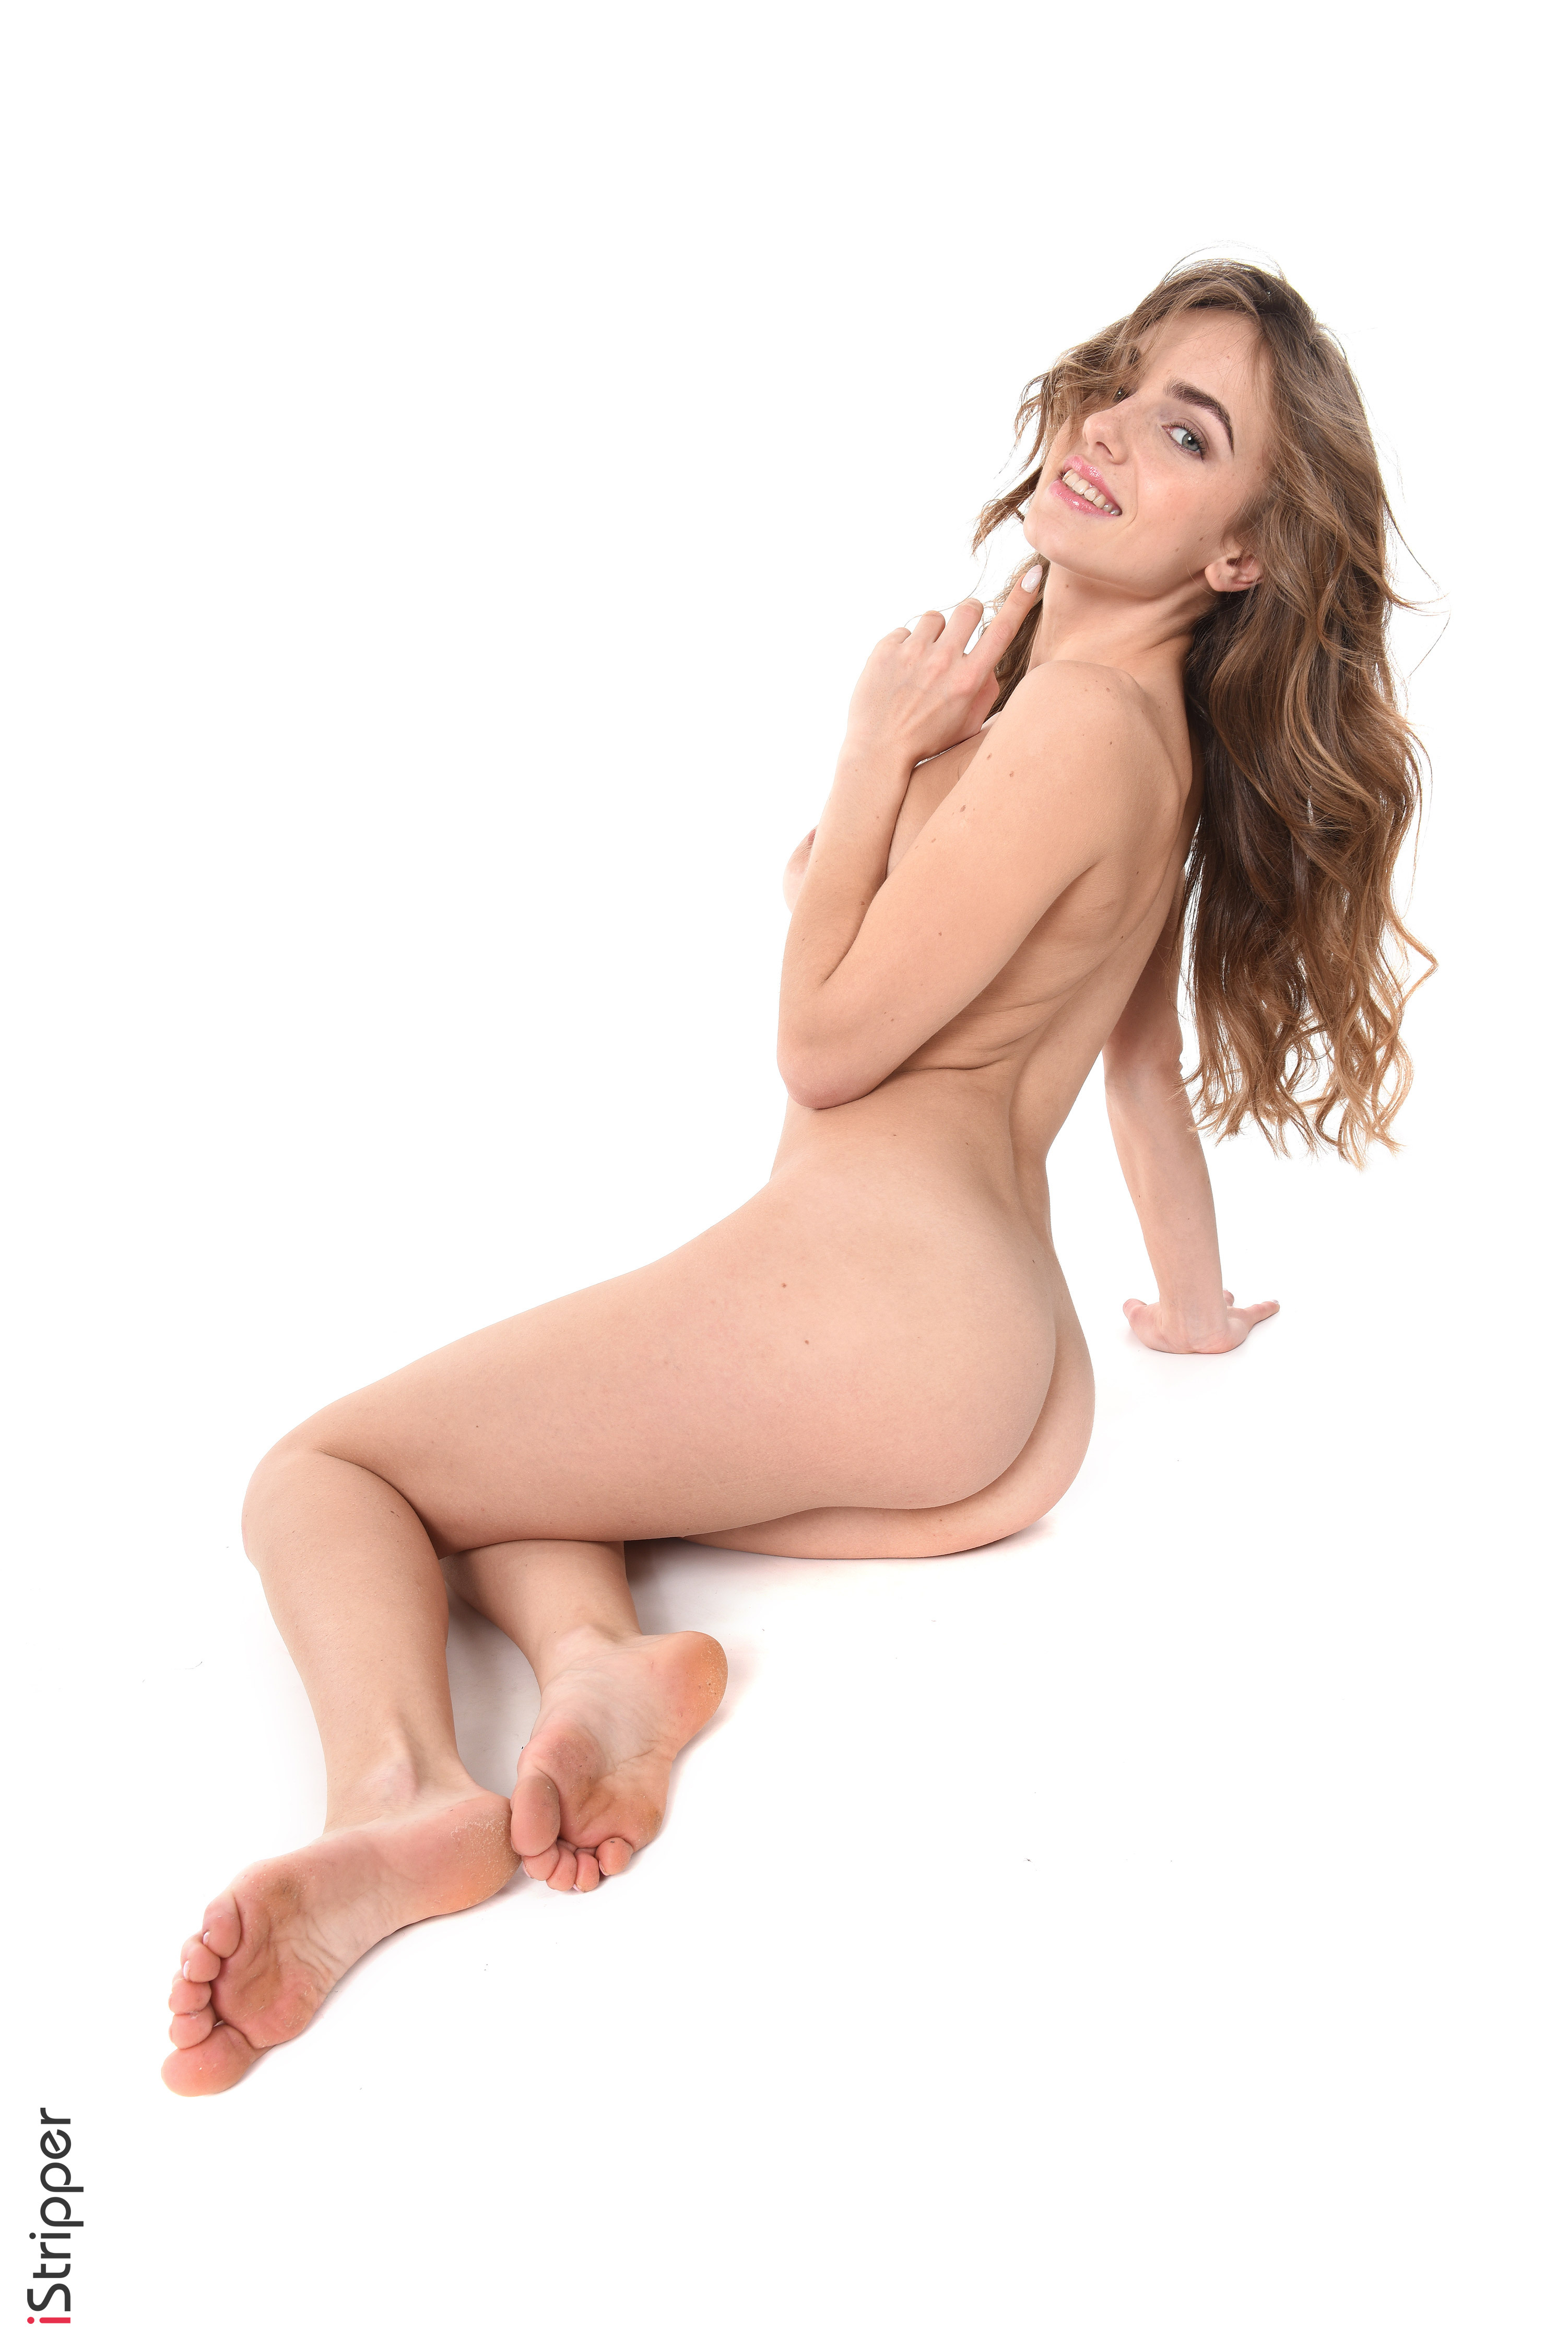 nude and sexy wallpapers